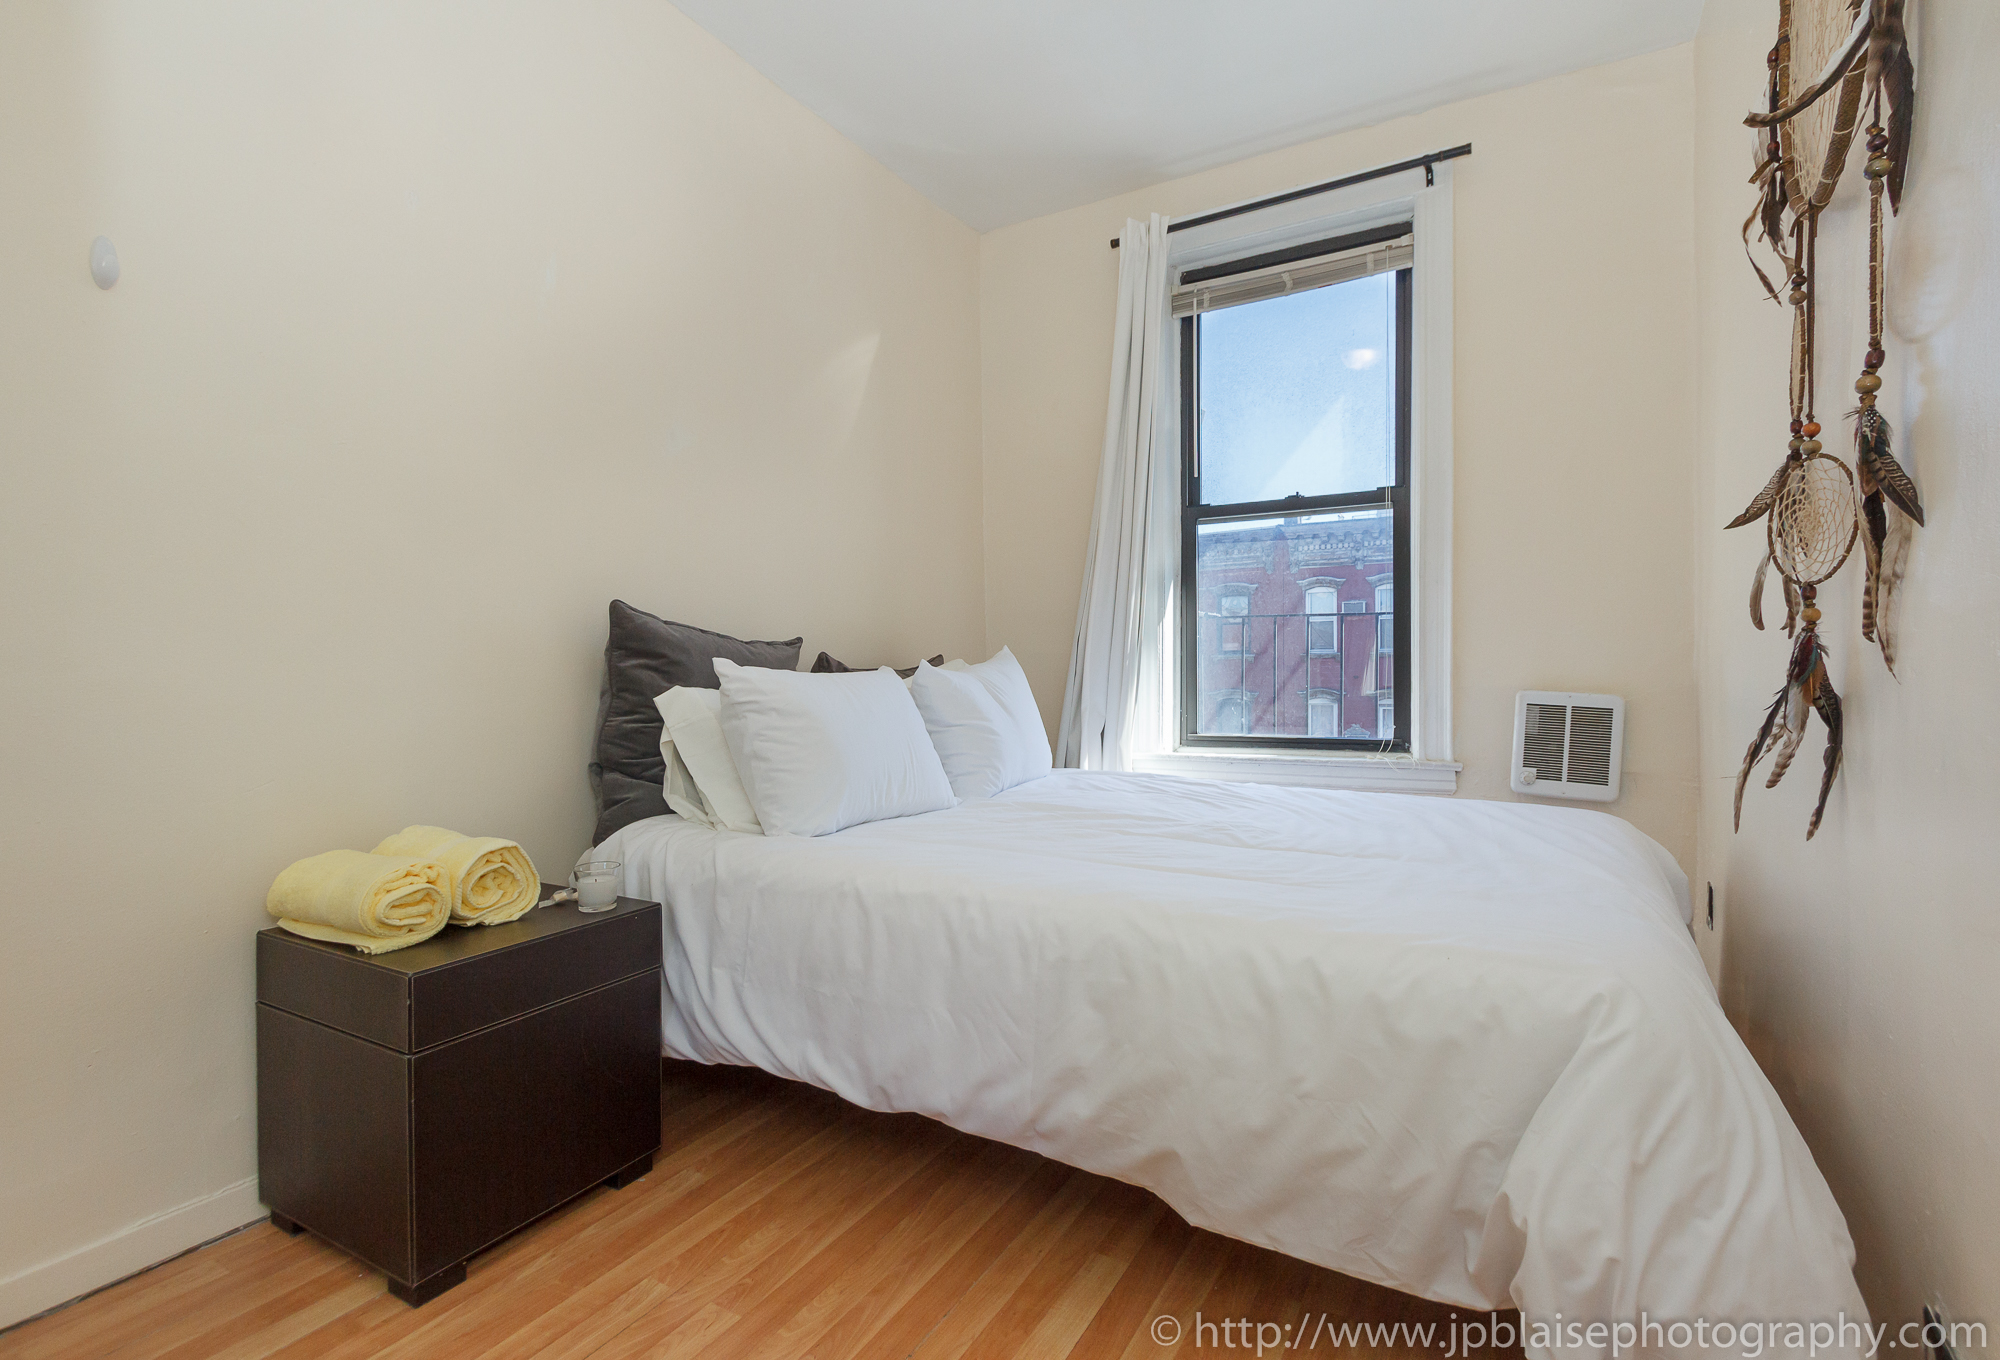 2 bedroom bathroom apartments nyc image bathroom 2017 for 1 bedroom apartments nyc